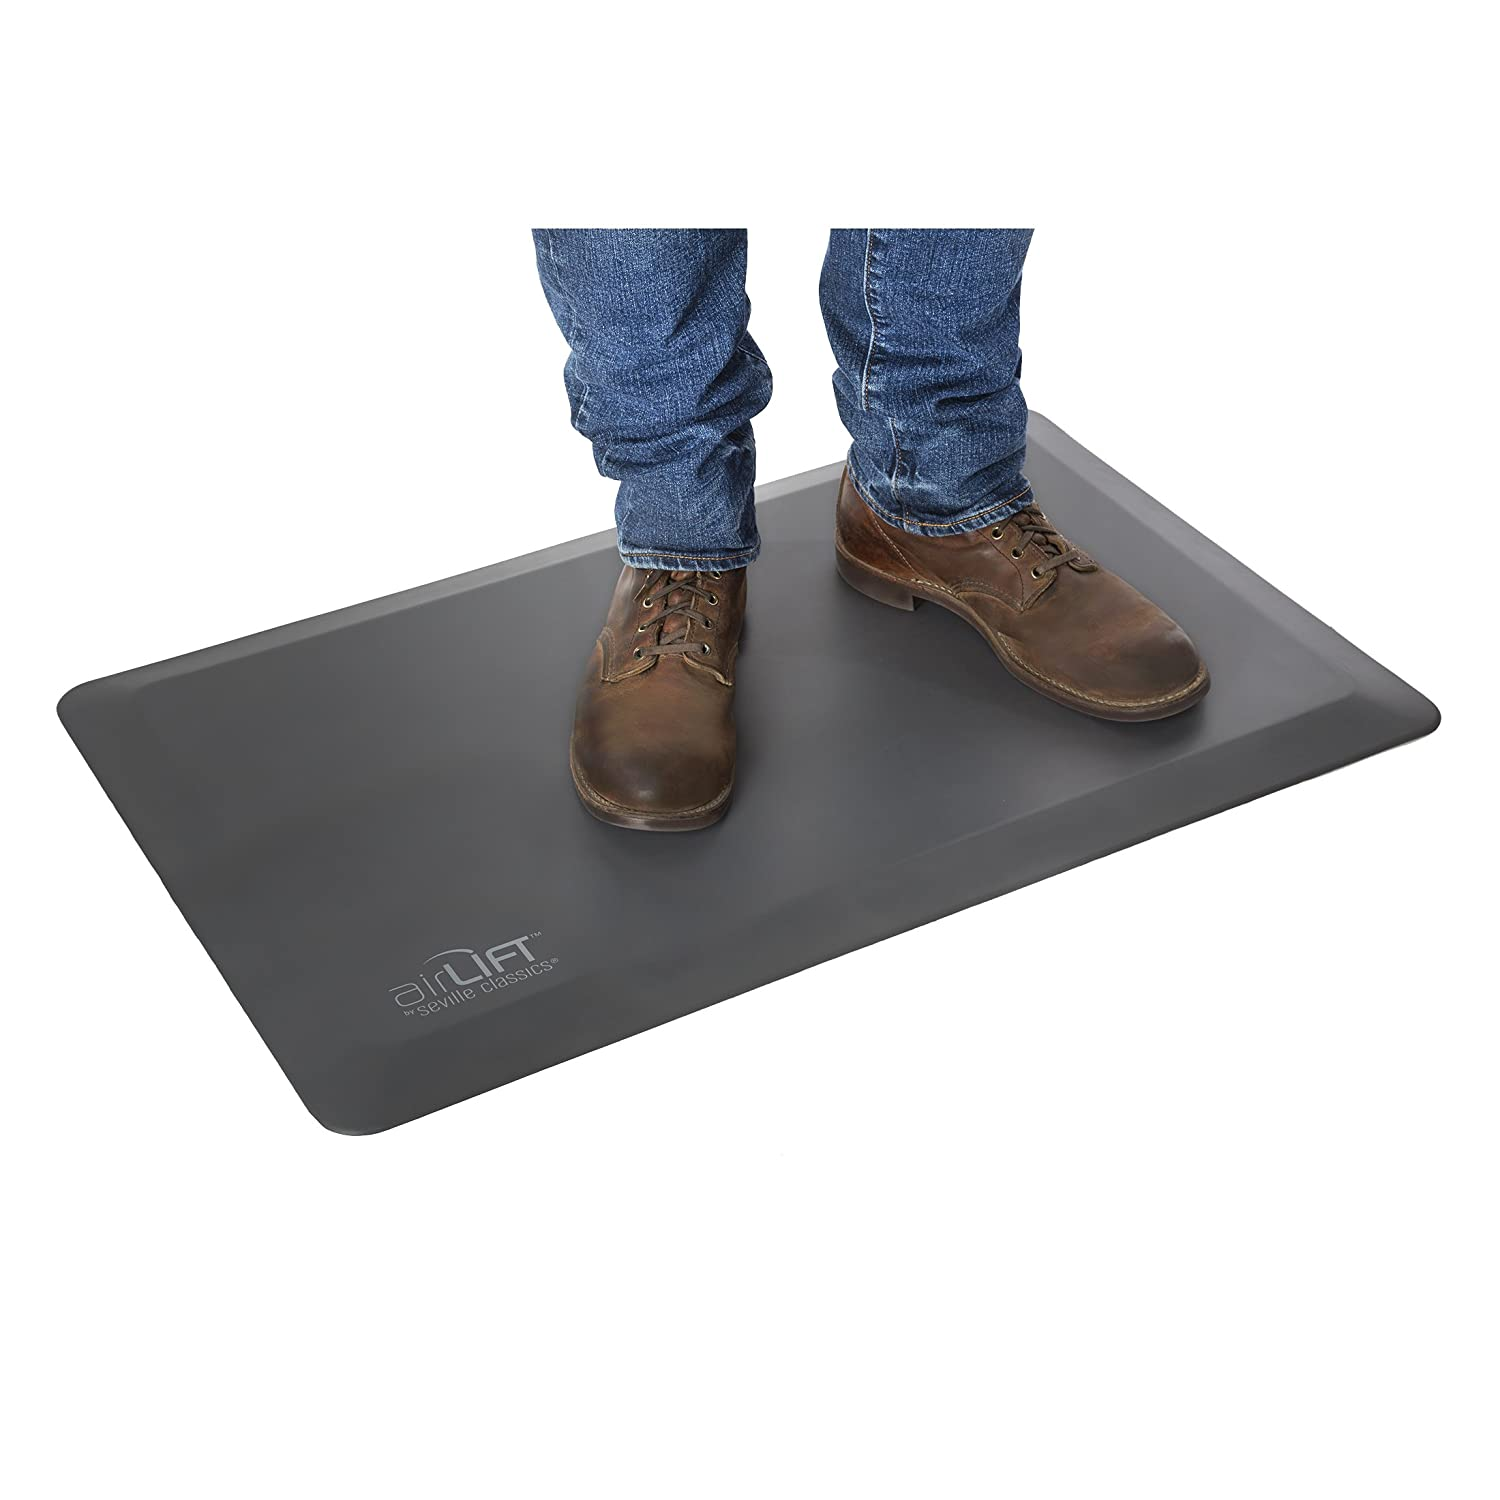 Seville Classics AIRLIFT Anti-Fatigue Comfort Mat for Standing Desks Kitchens, 20